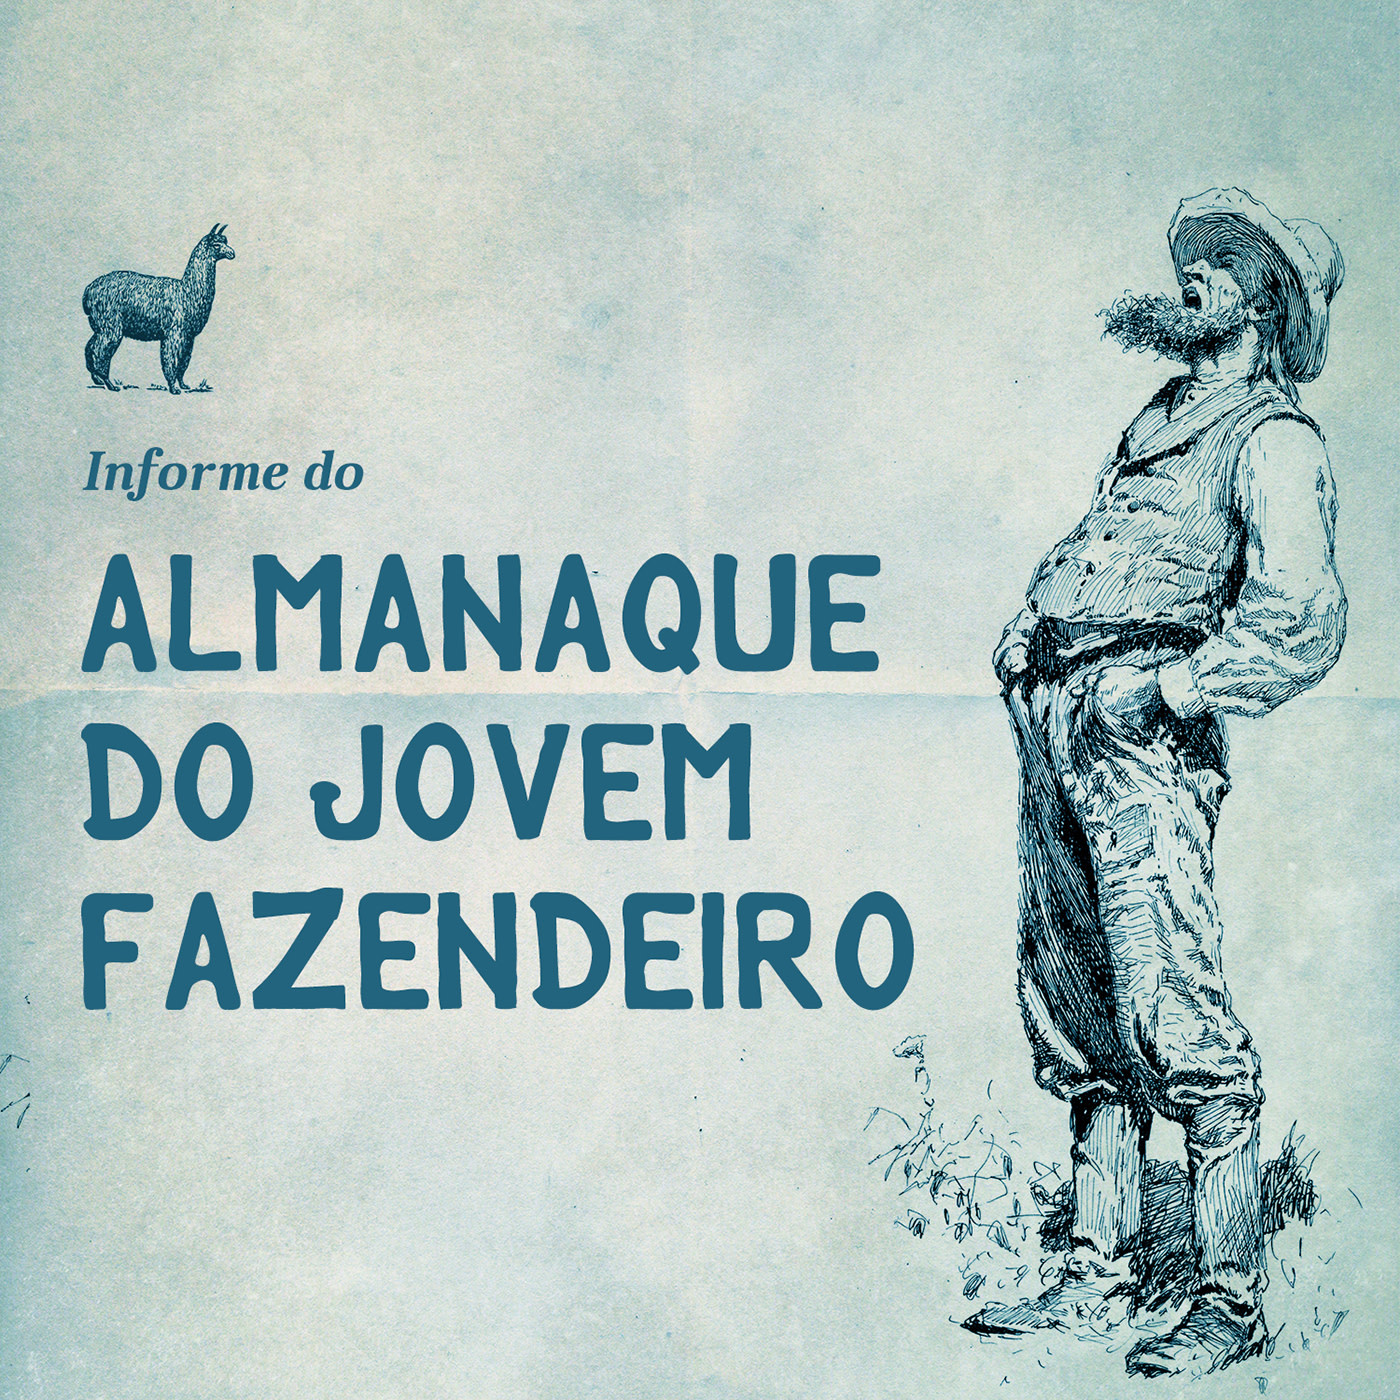 Informe do Almanaque do Jovem